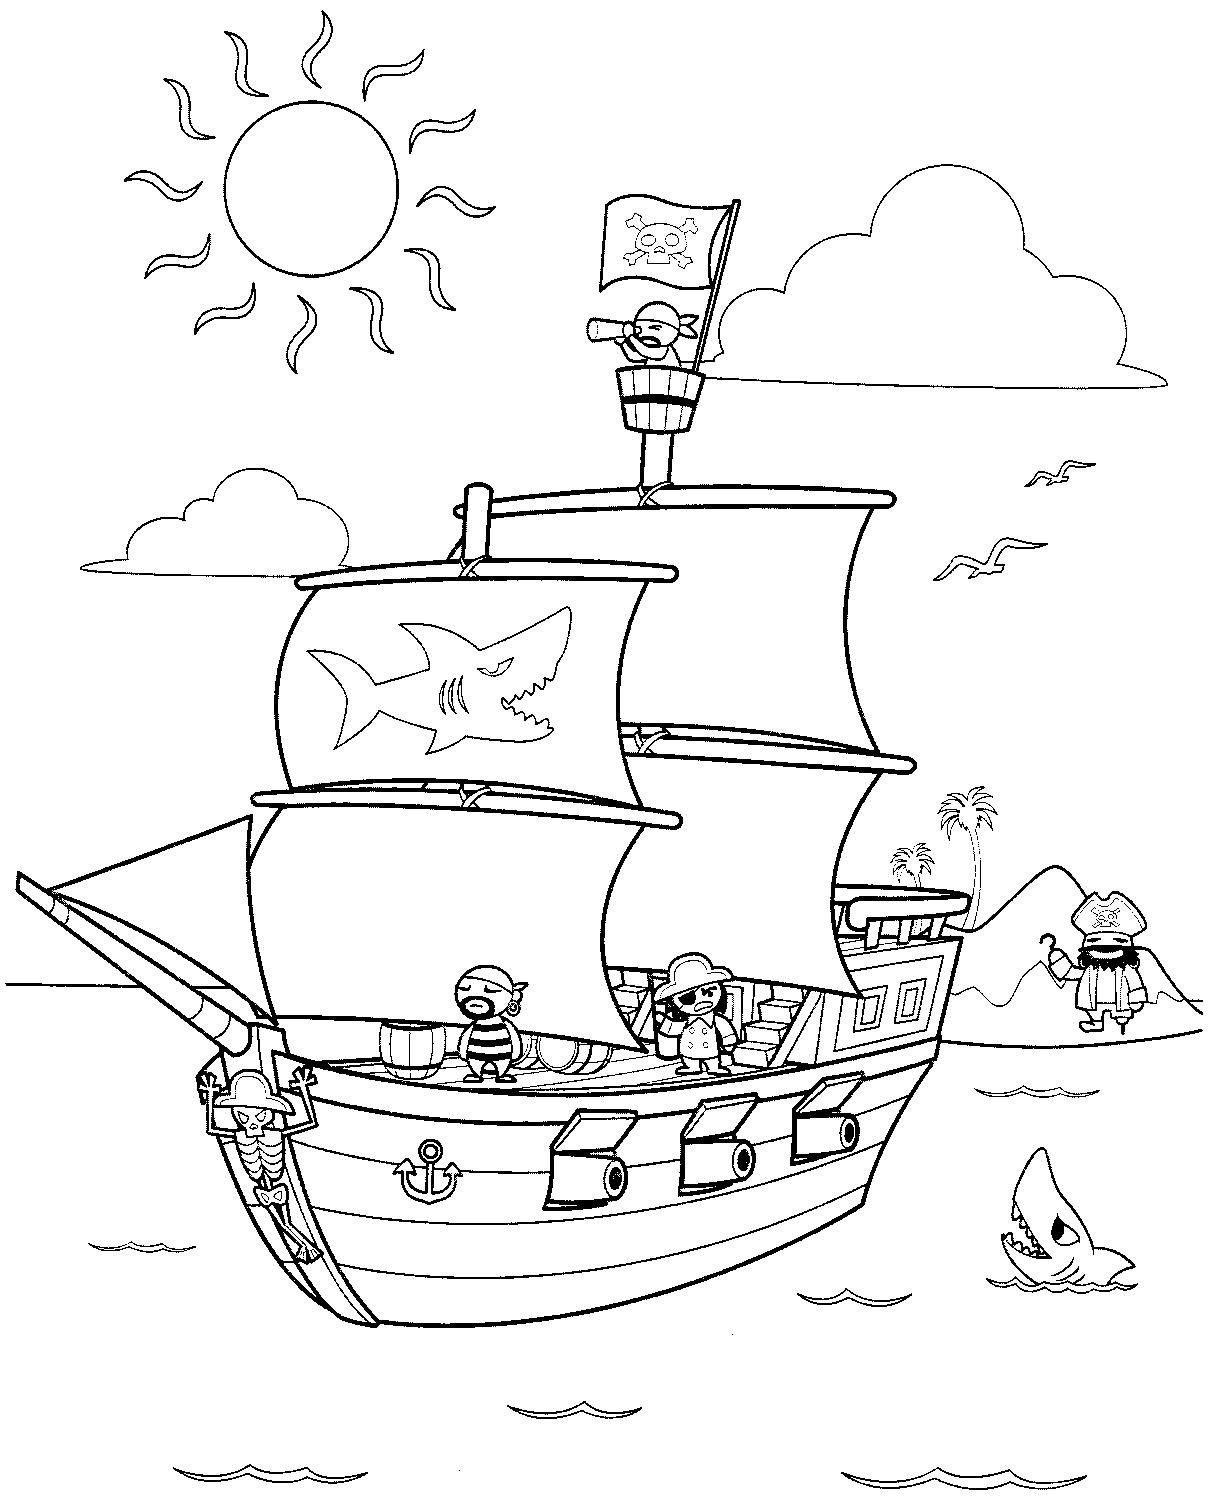 coloring pages pirate ship pirate colouring pages for kids in the playroom pirate pages ship coloring